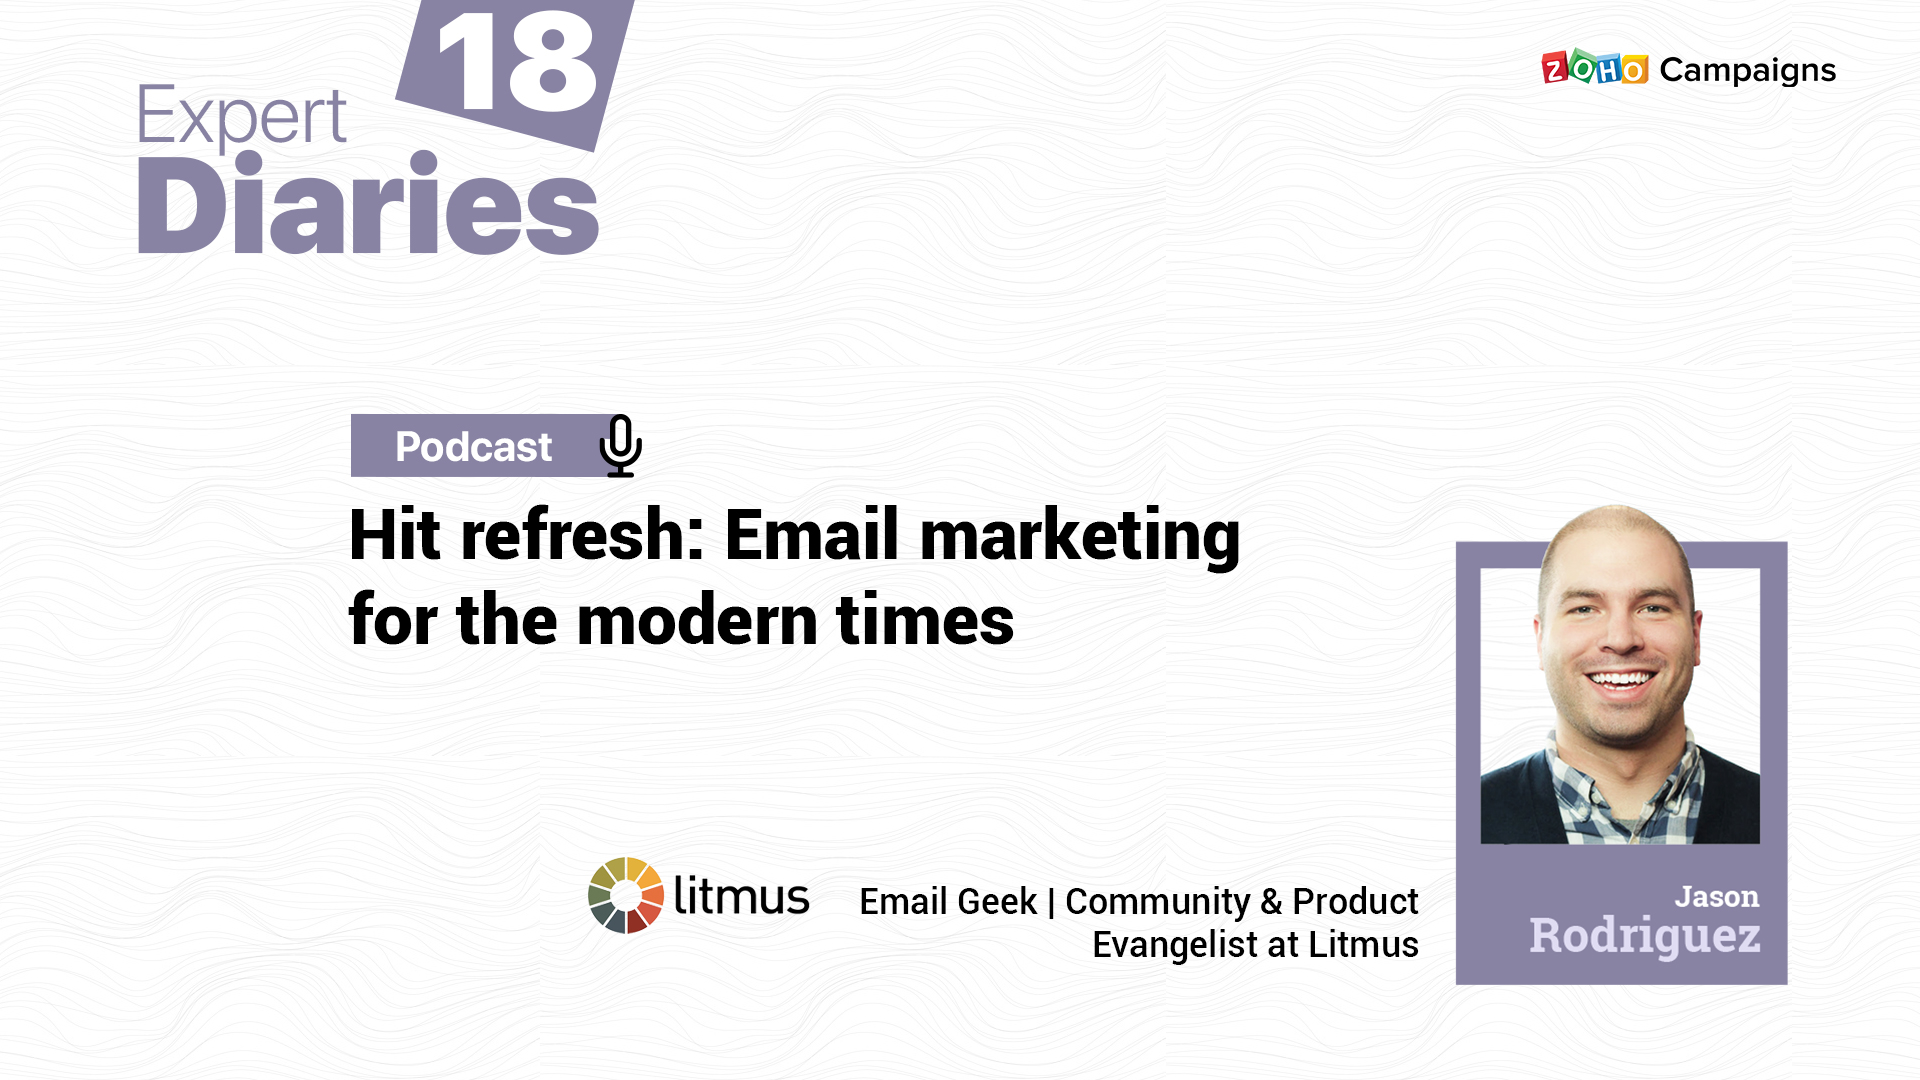 Hit refresh: Email marketing for the modern times